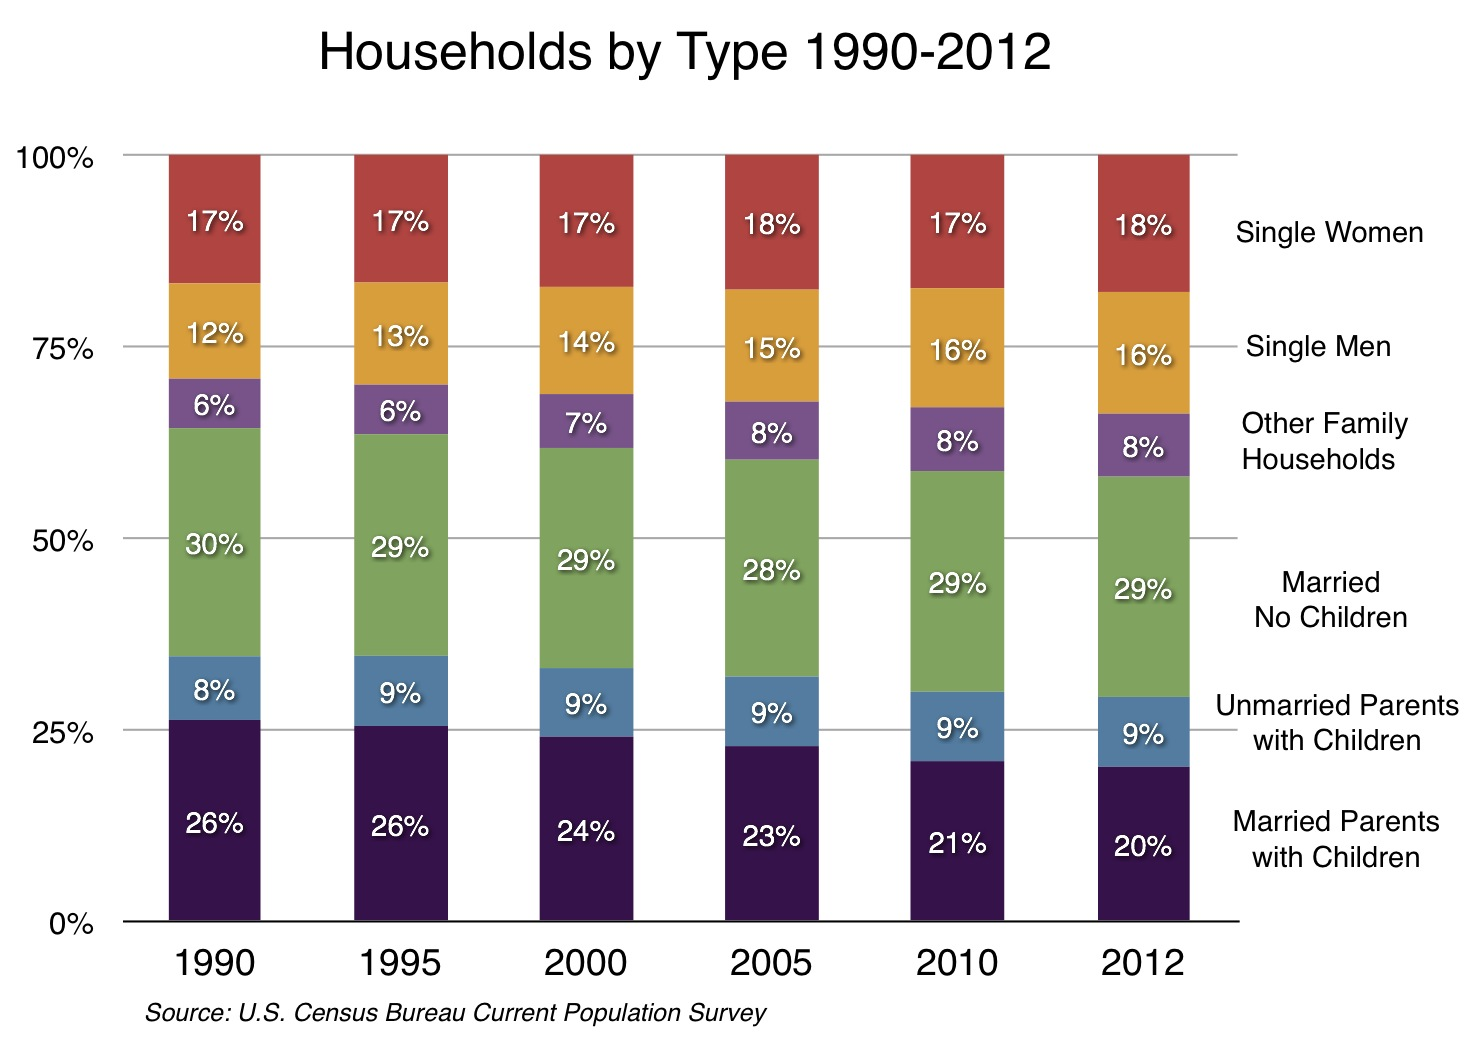 Households by type 2000-2012